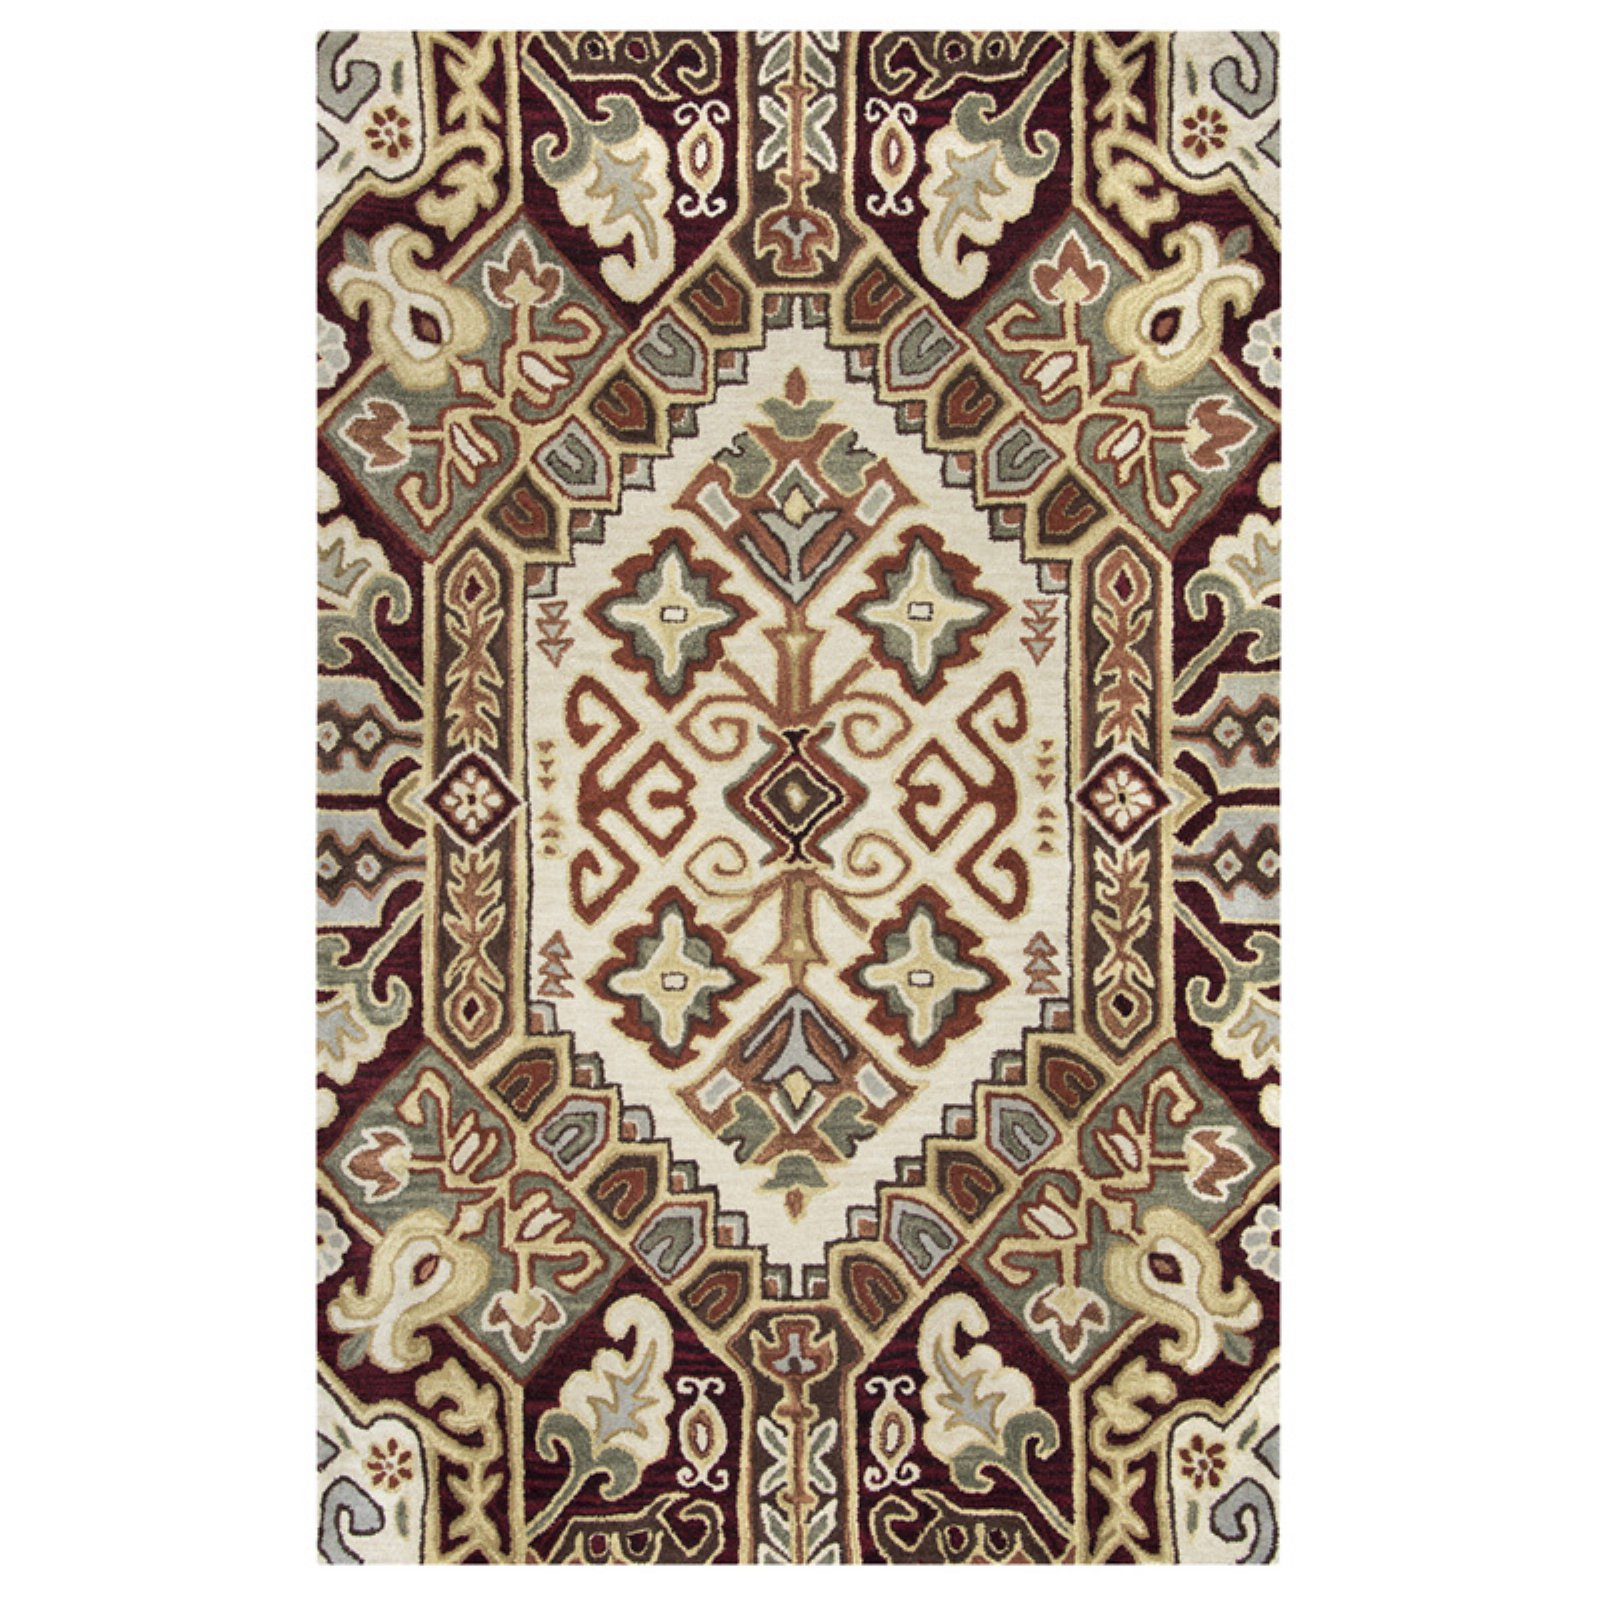 Rizzy Home Southwest SU8105 Rug - (9 Foot x 12 Foot)